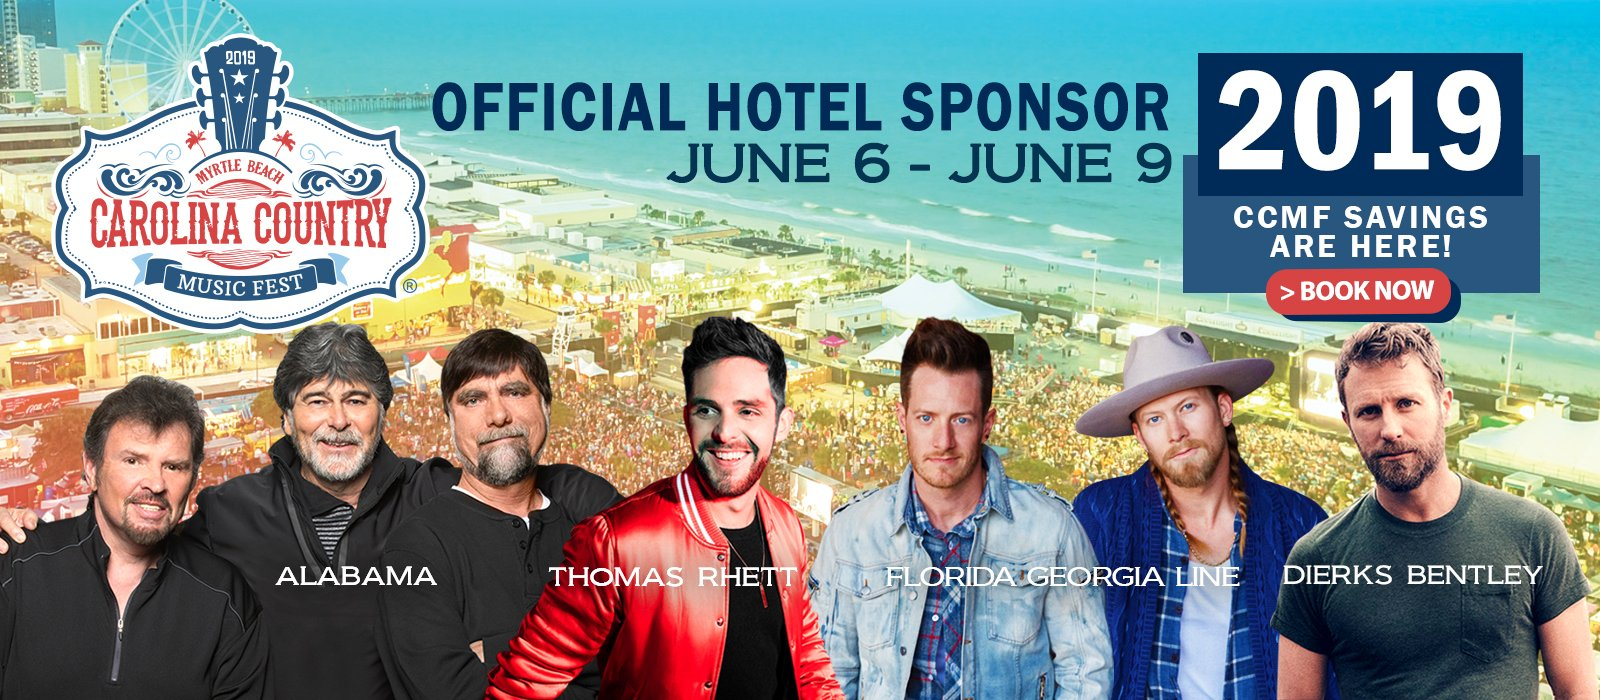 Carolina Country Music Fest Promo Image